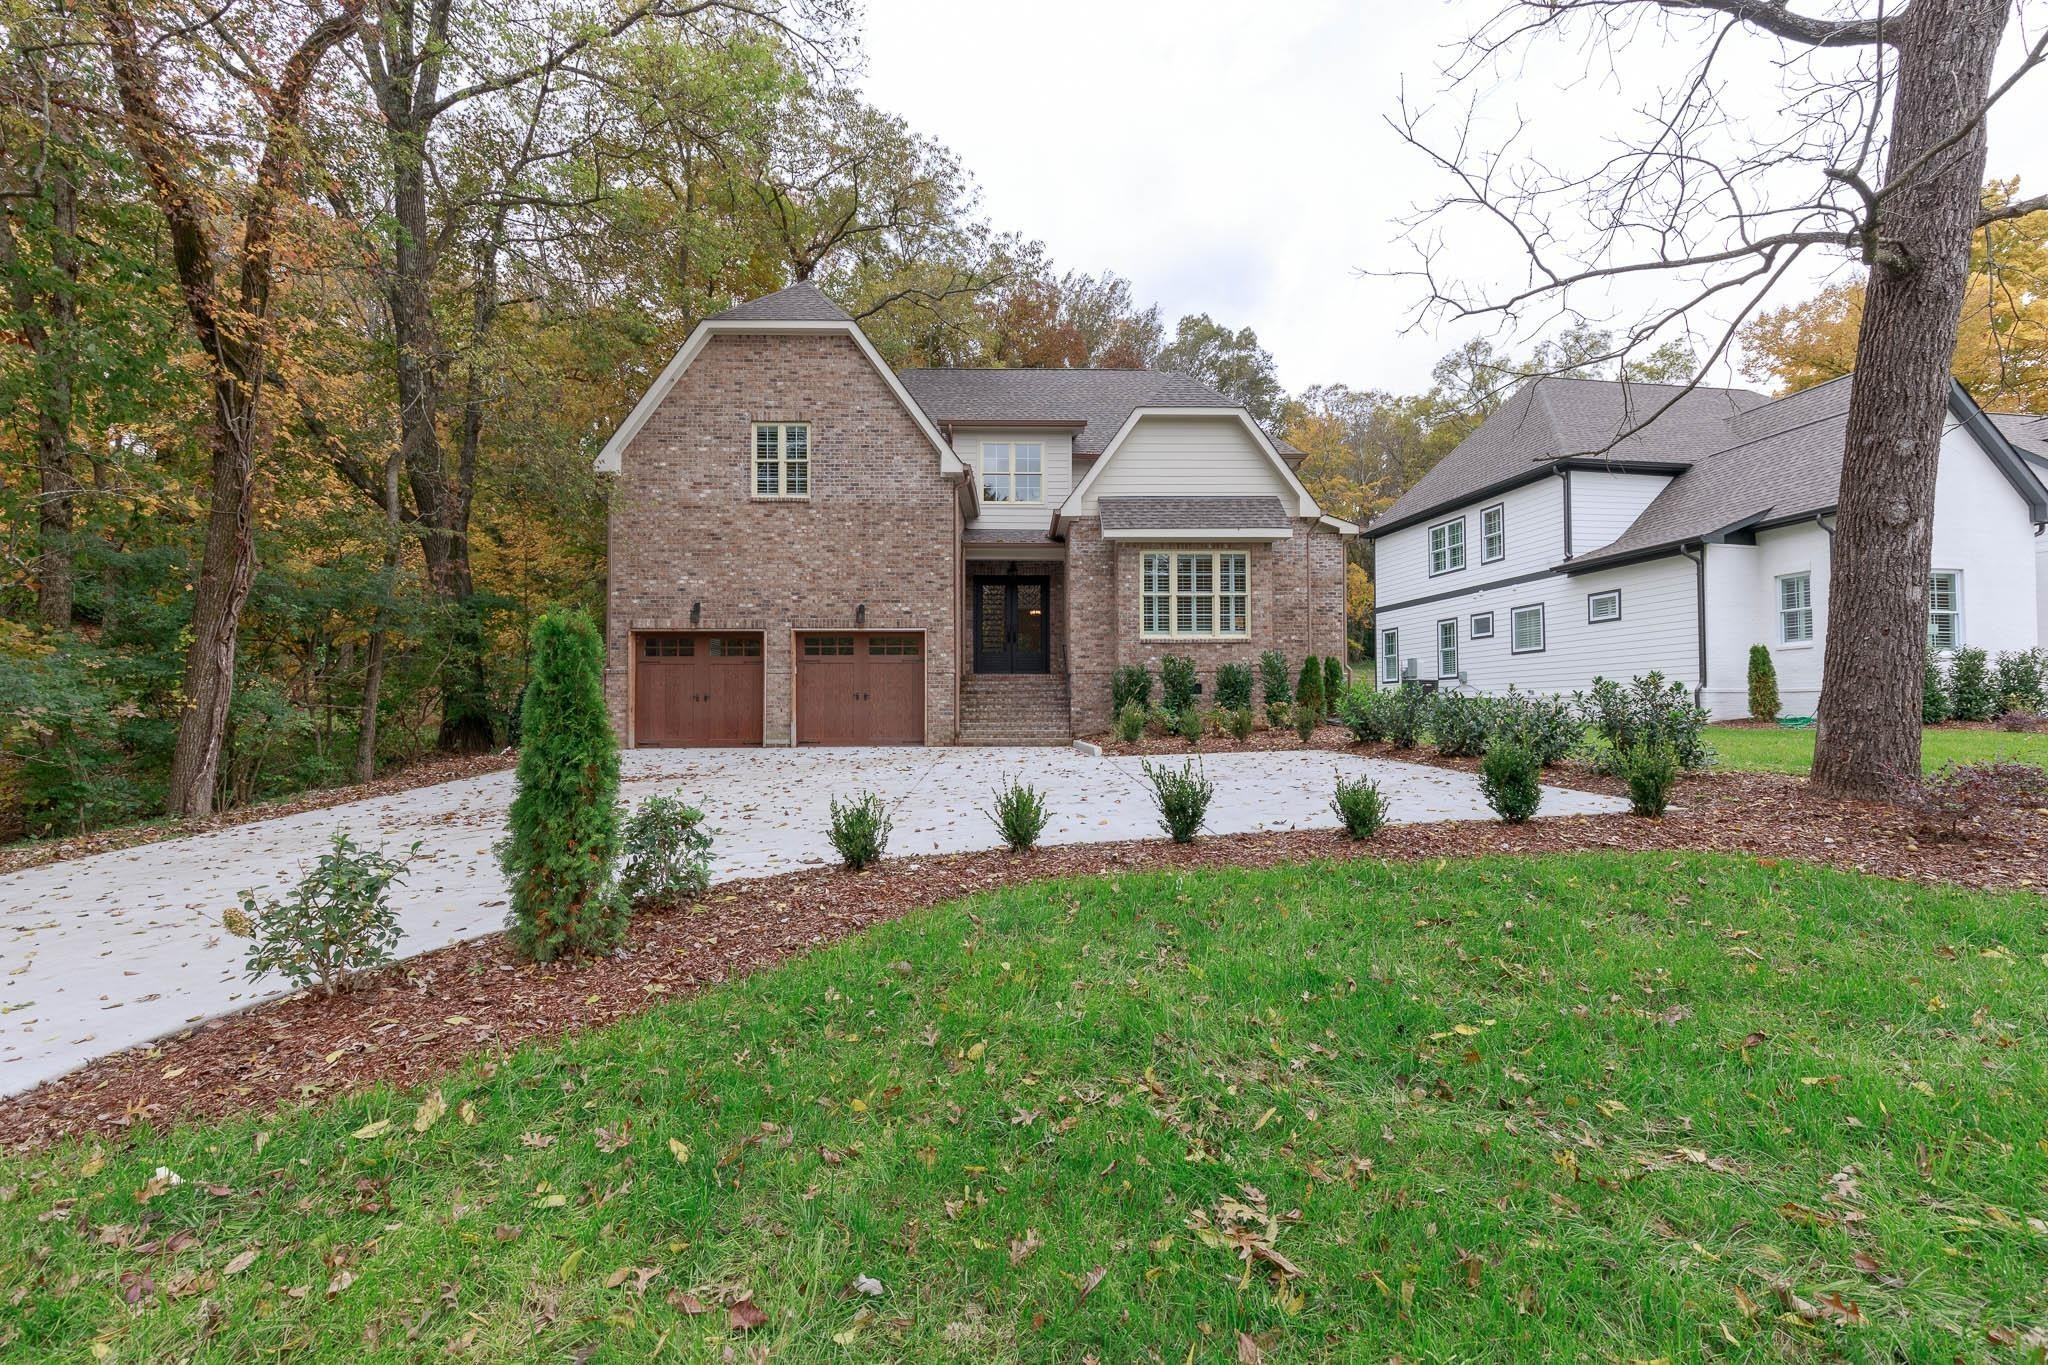 923 Downey Dr Property Photo - Nashville, TN real estate listing